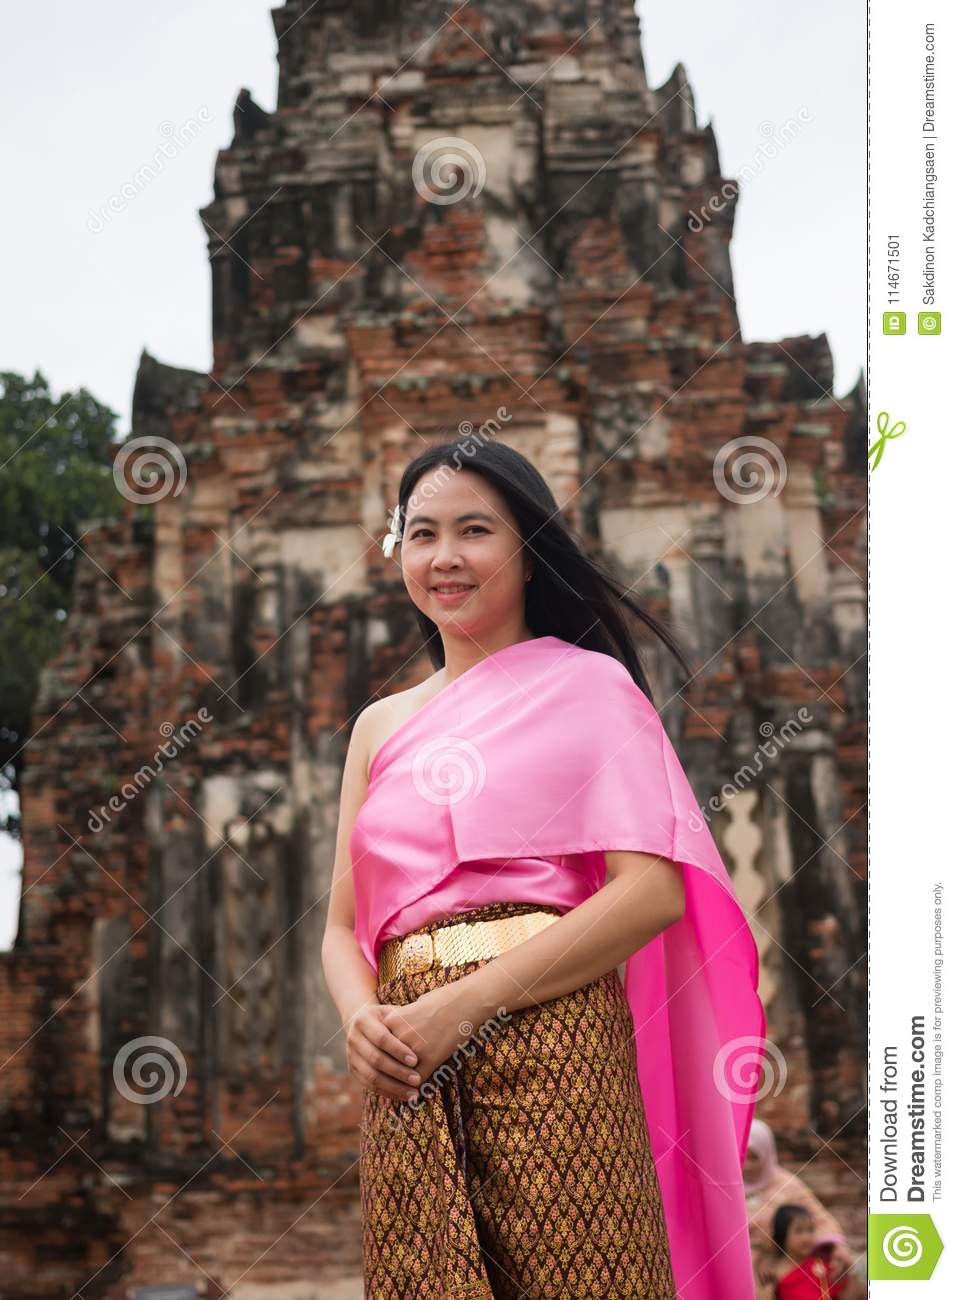 https://thumbs.dreamstime.com/z/beautiful-woman-wearing-thai-dress-ancient-temple-thailand-beautiful-women-wearing-thai-dress-ancient-temple-114671501.jpg